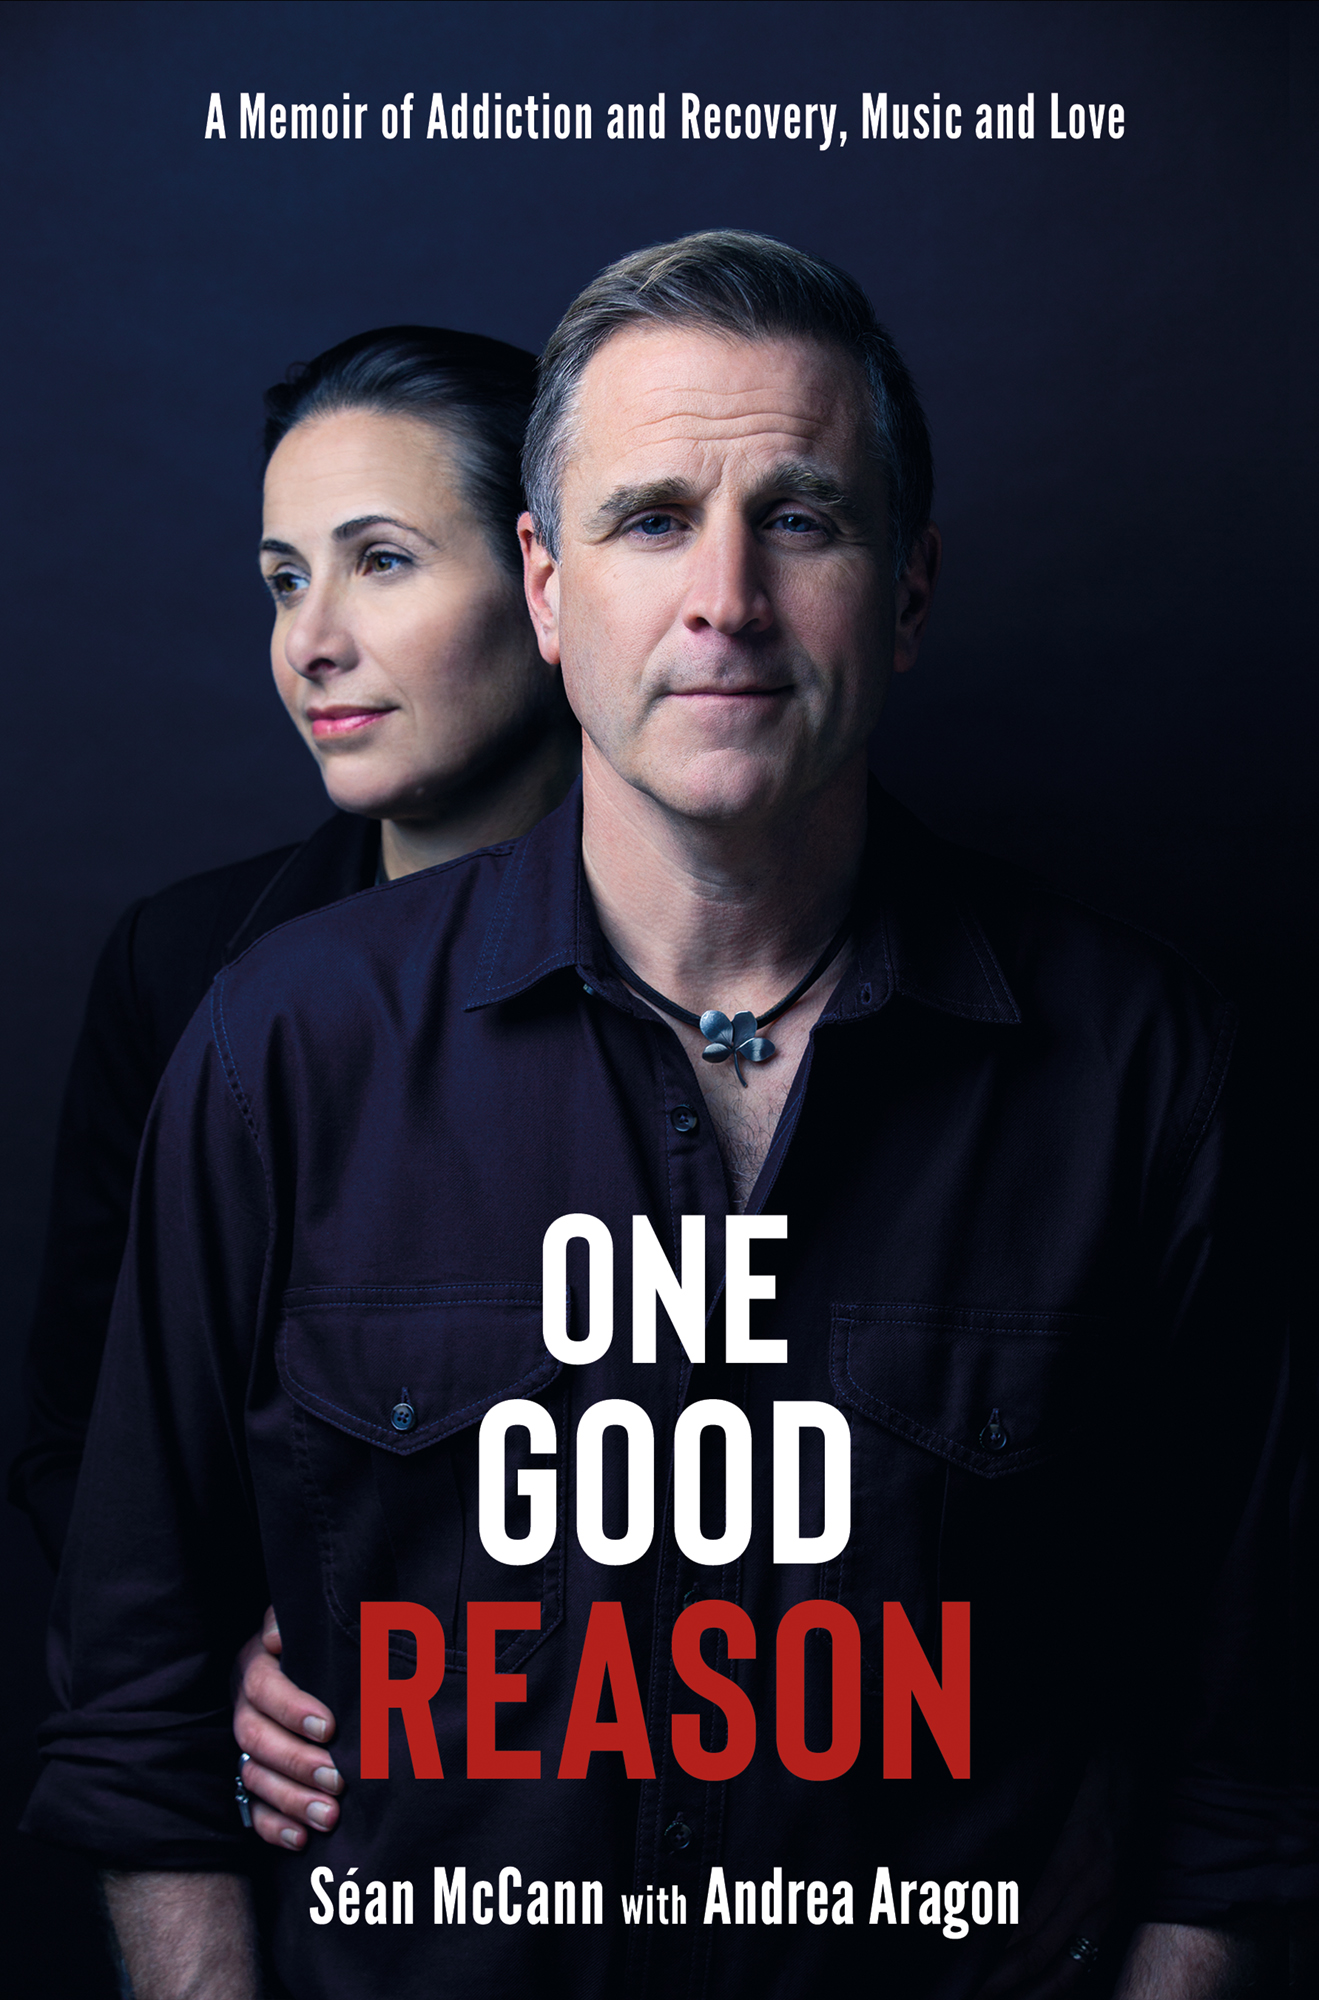 One Good Reason: A Memoir of Addiction and Recovery, Music and Love